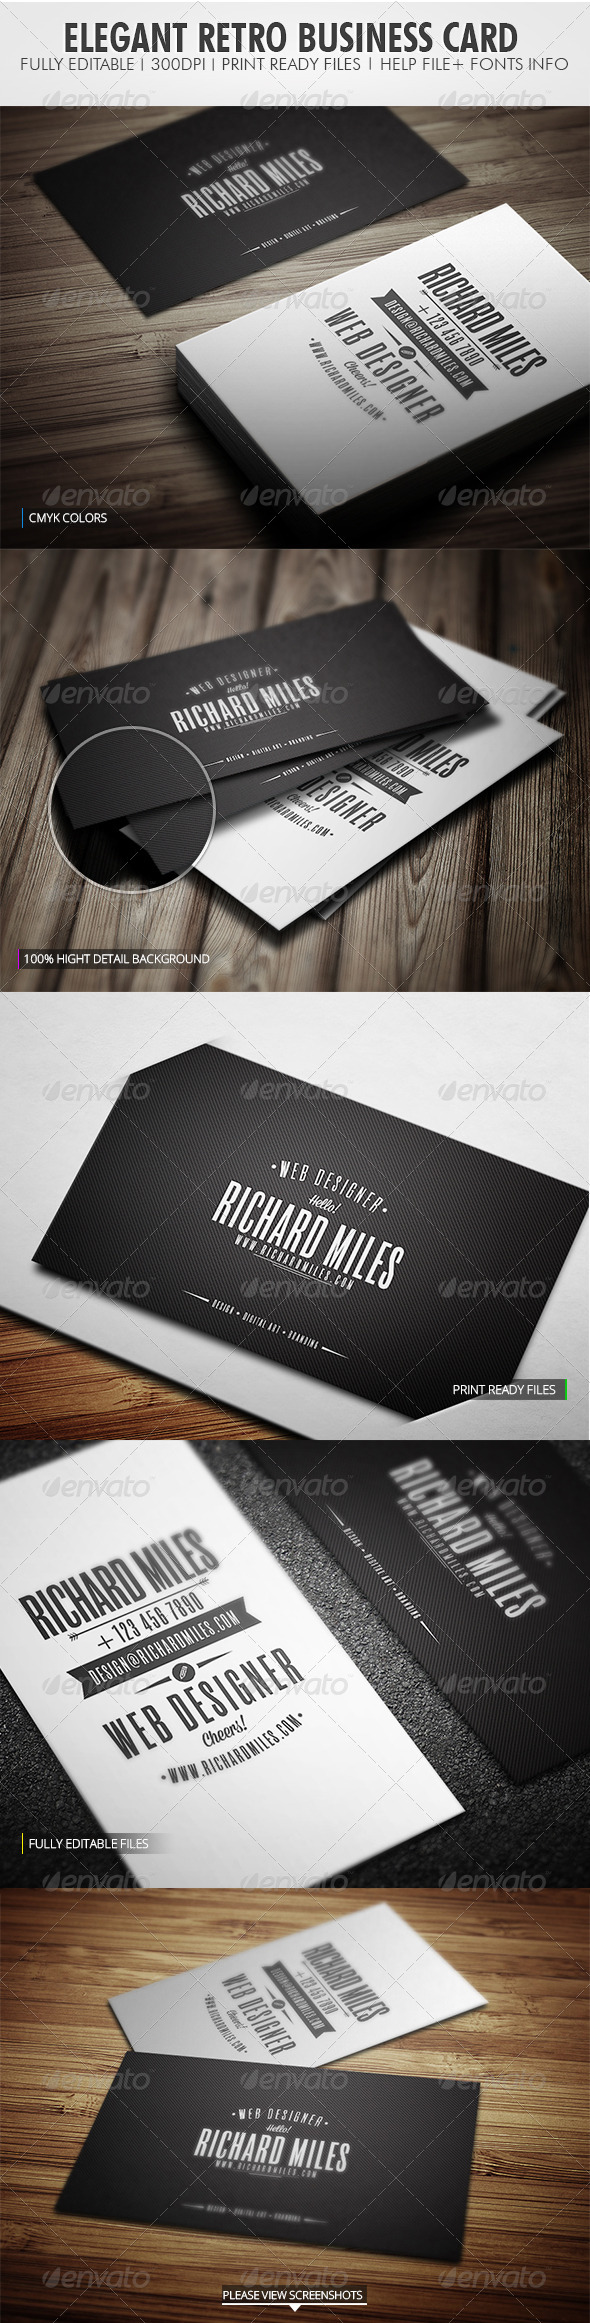 GraphicRiver Elegant Retro Business Card 4225249